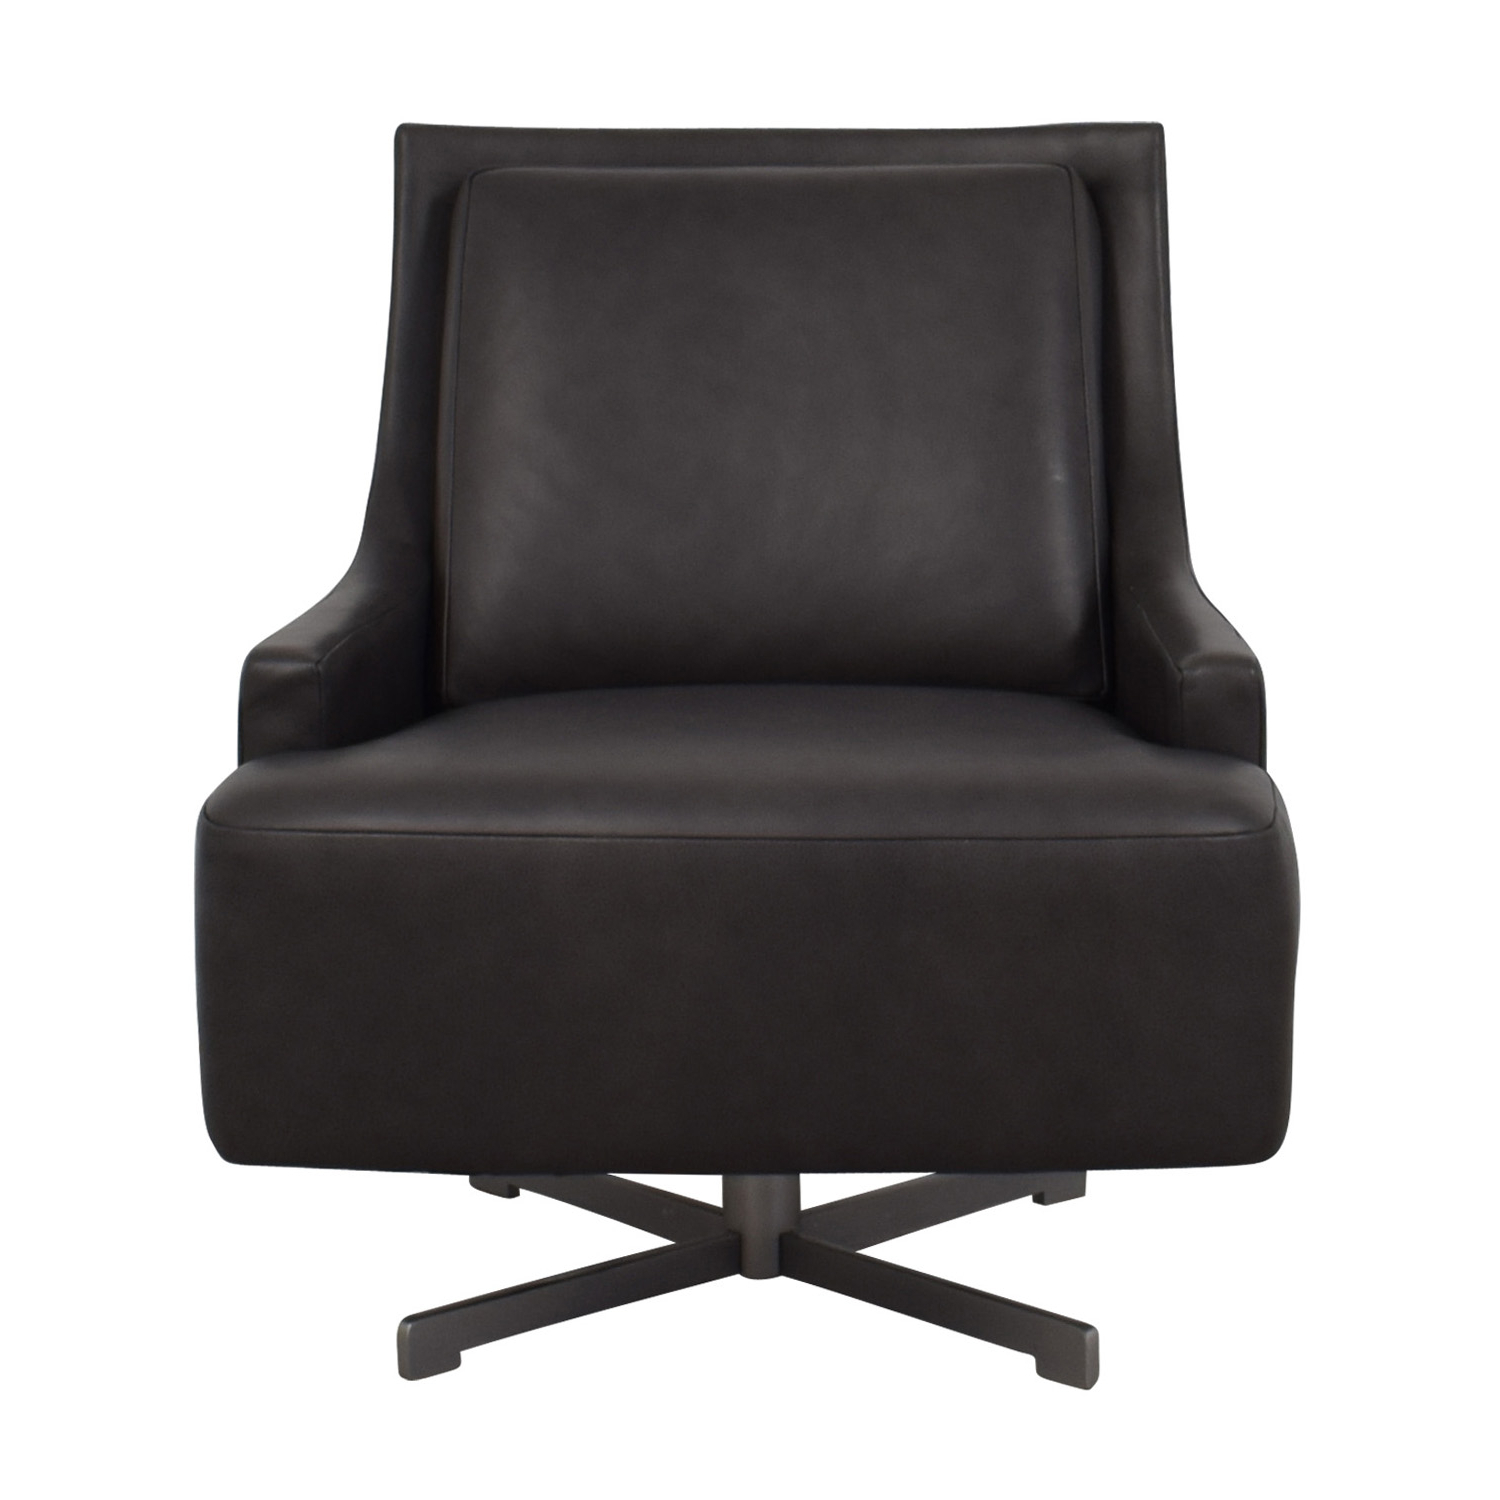 [%86% Off – Hbf Hbf Dark Grey Swivel Lounge Chair / Chairs With Trendy Dark Grey Swivel Chairs|Dark Grey Swivel Chairs With 2018 86% Off – Hbf Hbf Dark Grey Swivel Lounge Chair / Chairs|Preferred Dark Grey Swivel Chairs Inside 86% Off – Hbf Hbf Dark Grey Swivel Lounge Chair / Chairs|Widely Used 86% Off – Hbf Hbf Dark Grey Swivel Lounge Chair / Chairs For Dark Grey Swivel Chairs%] (View 1 of 20)